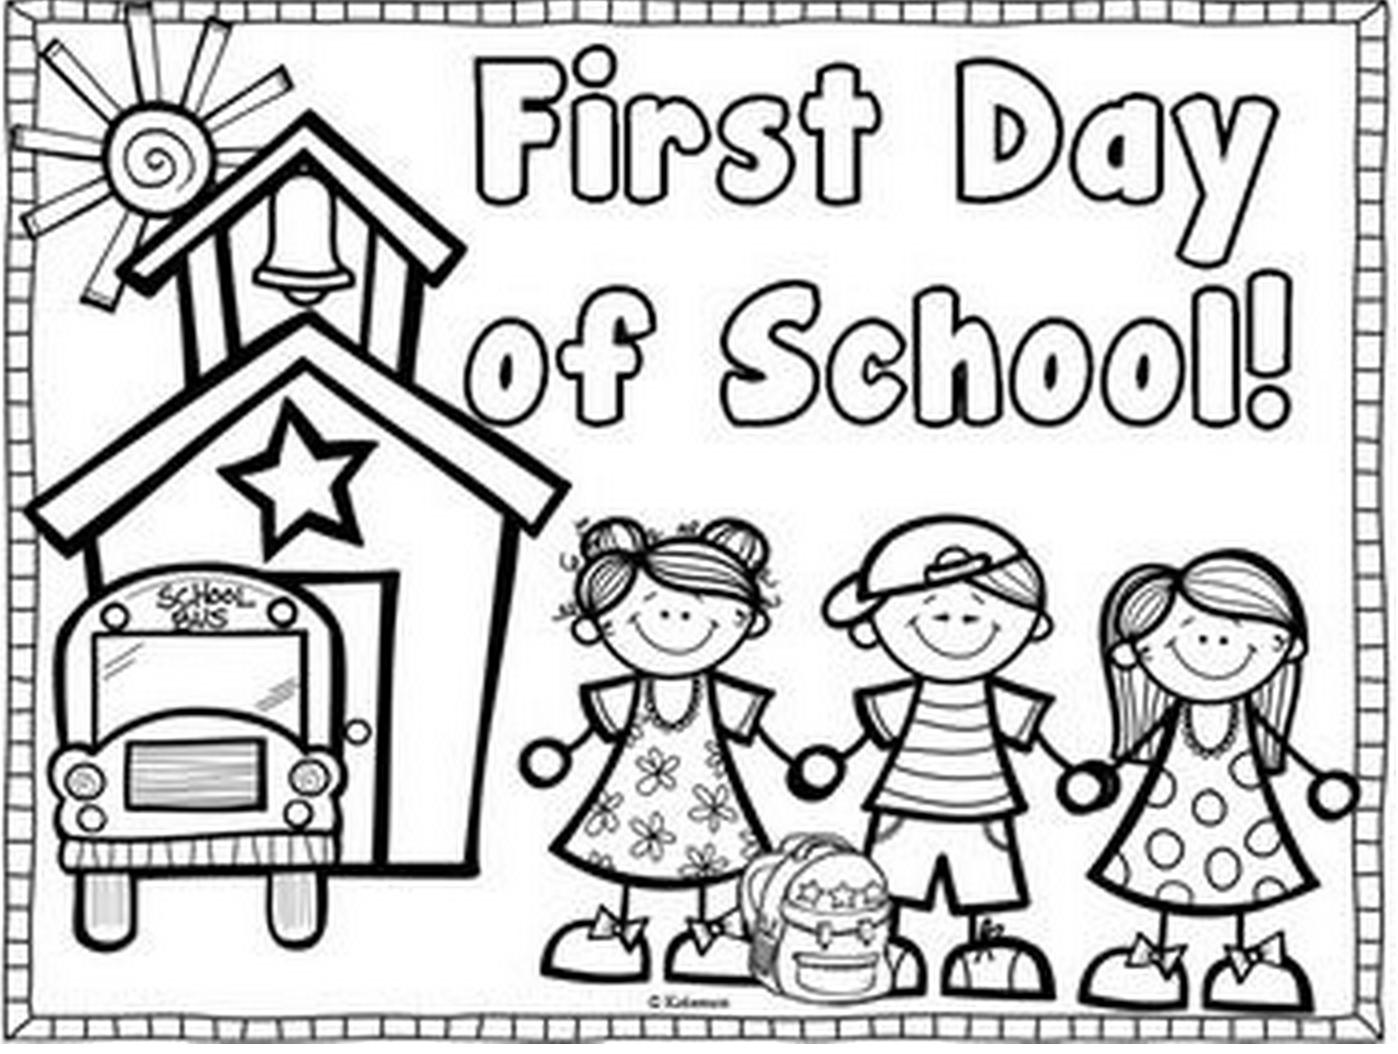 Adult Beauty Welcome To Kindergarten Coloring Page Gallery Images beauty welcome to school coloring page az pages first day of kindergarten kids images